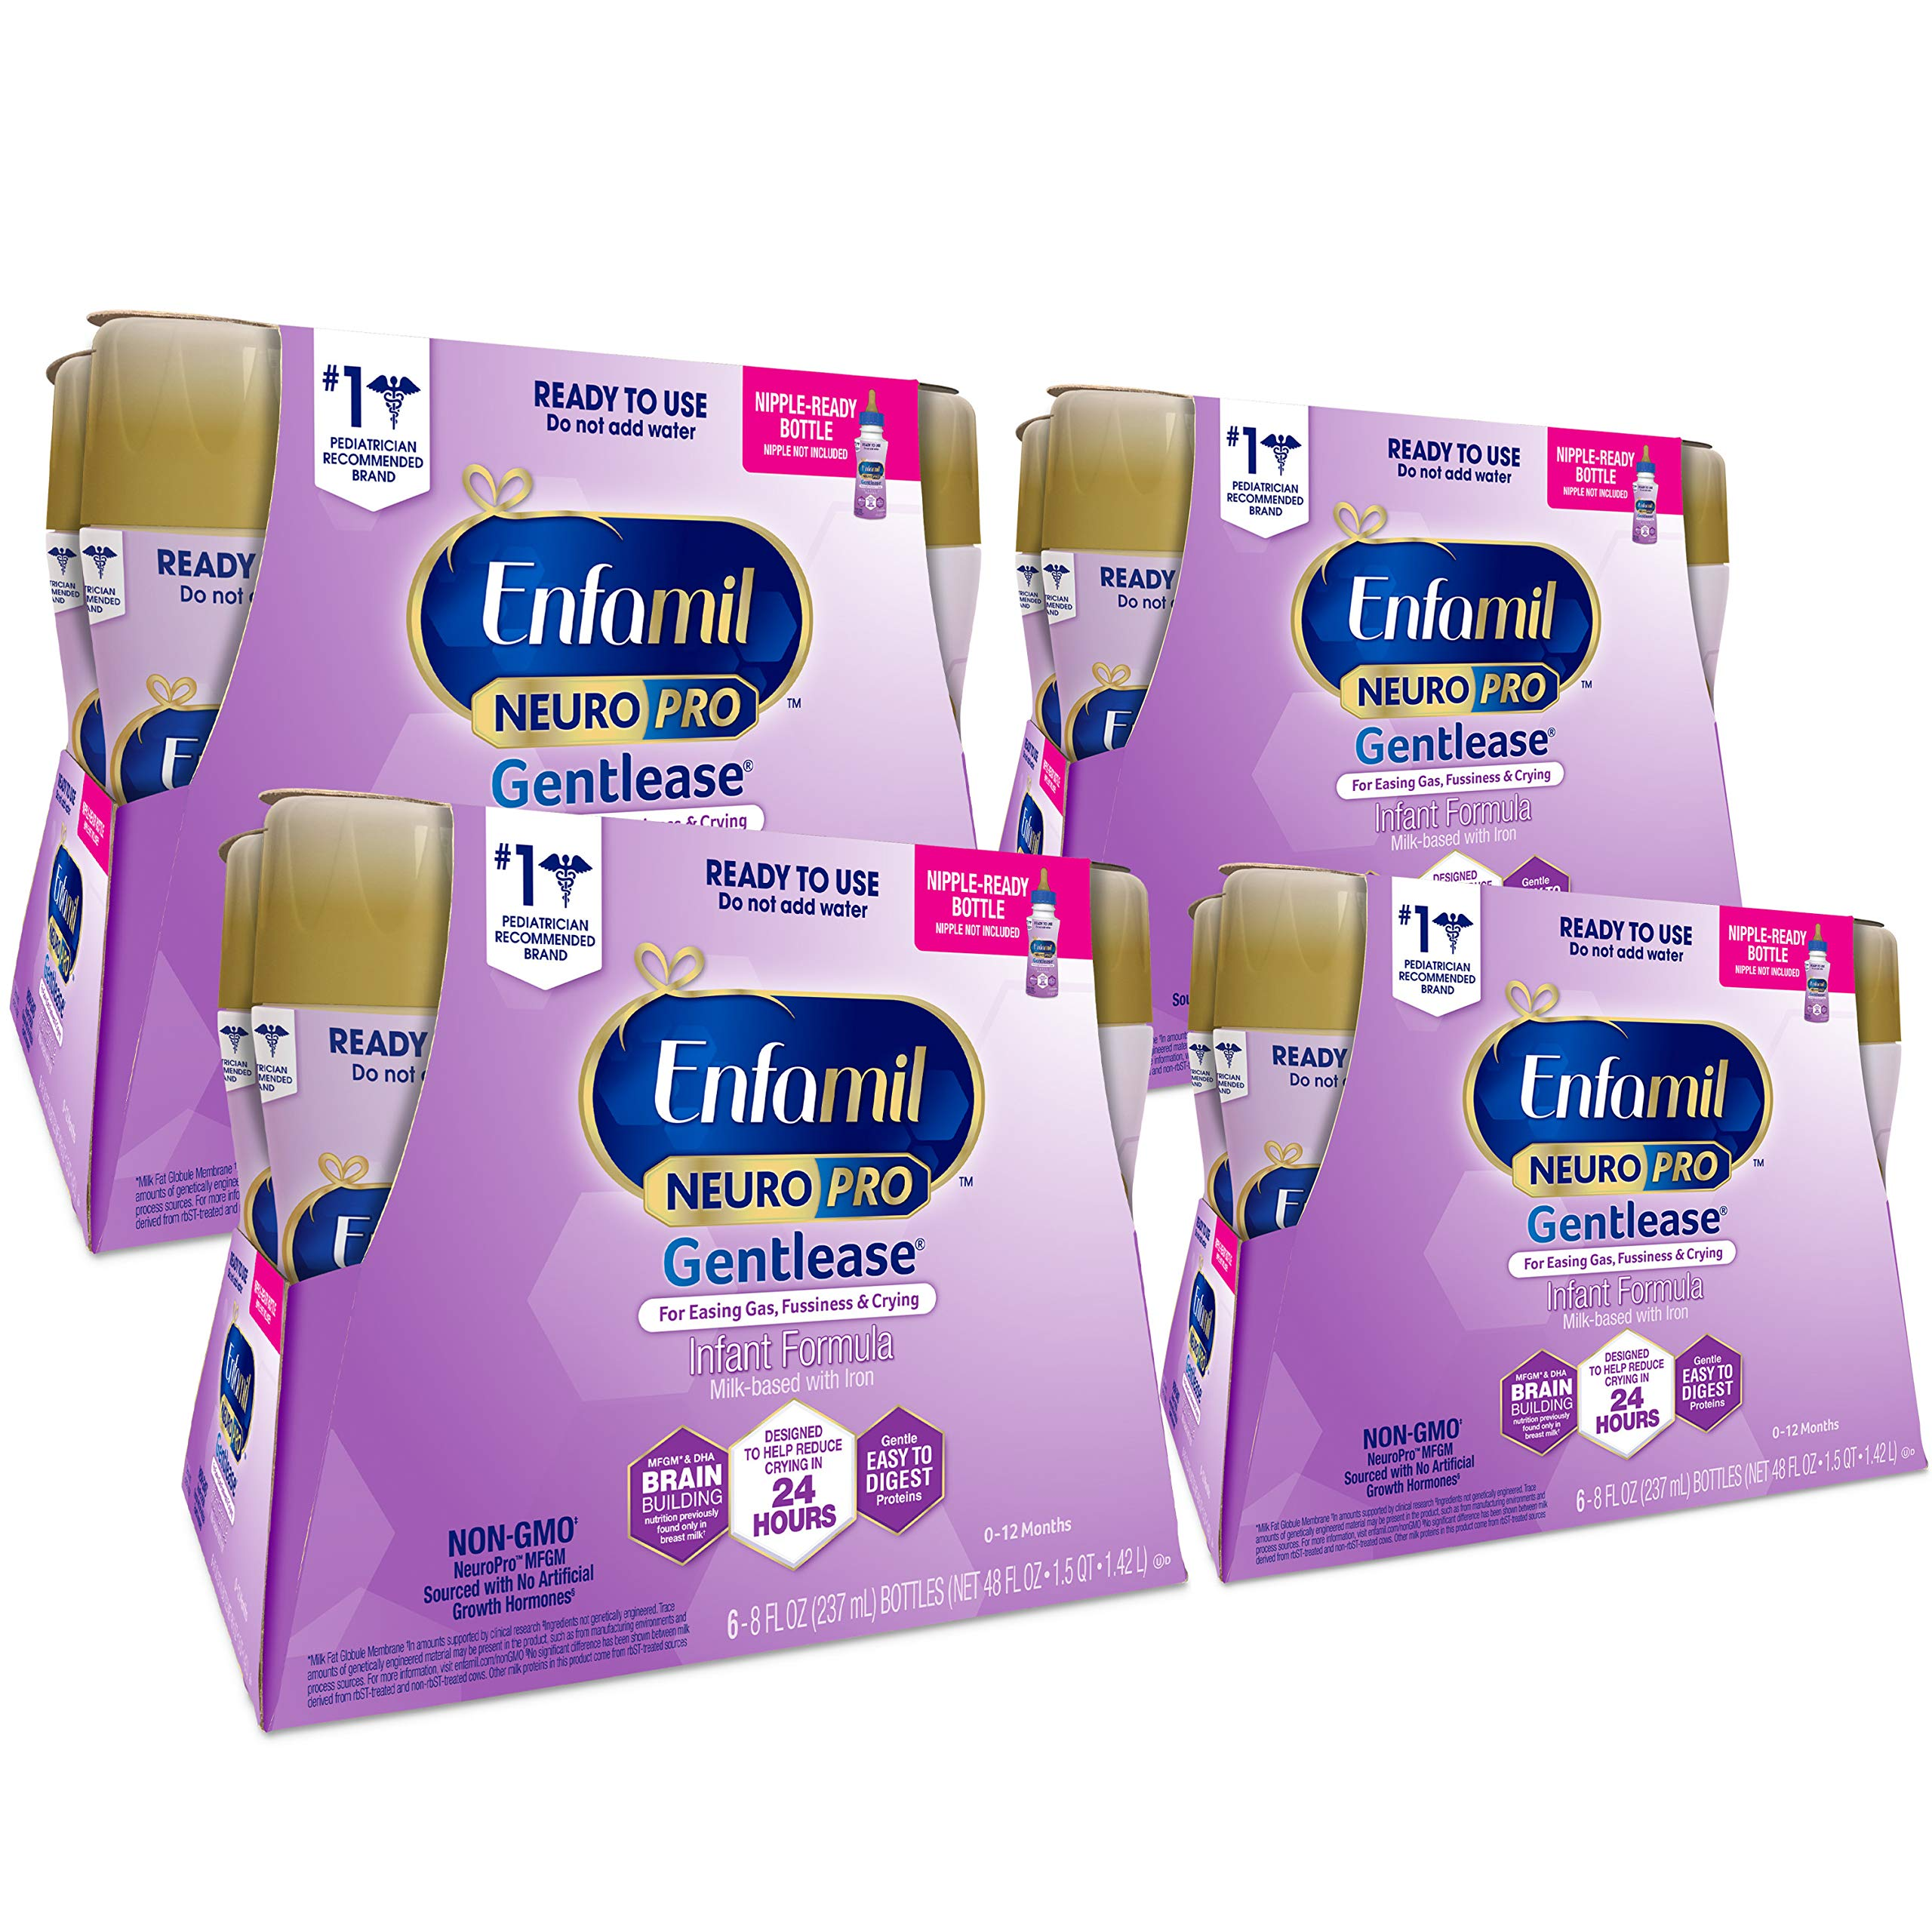 Enfamil NeuroPro Gentlease Ready to Use Baby Formula, Brain & Immune Support, Clinically Proven to Reduce Fusiness, Gas, Crying in 24 Hours, 8 Fl Oz Bottles (6 count) (Pack of 4), Total 24 bottles